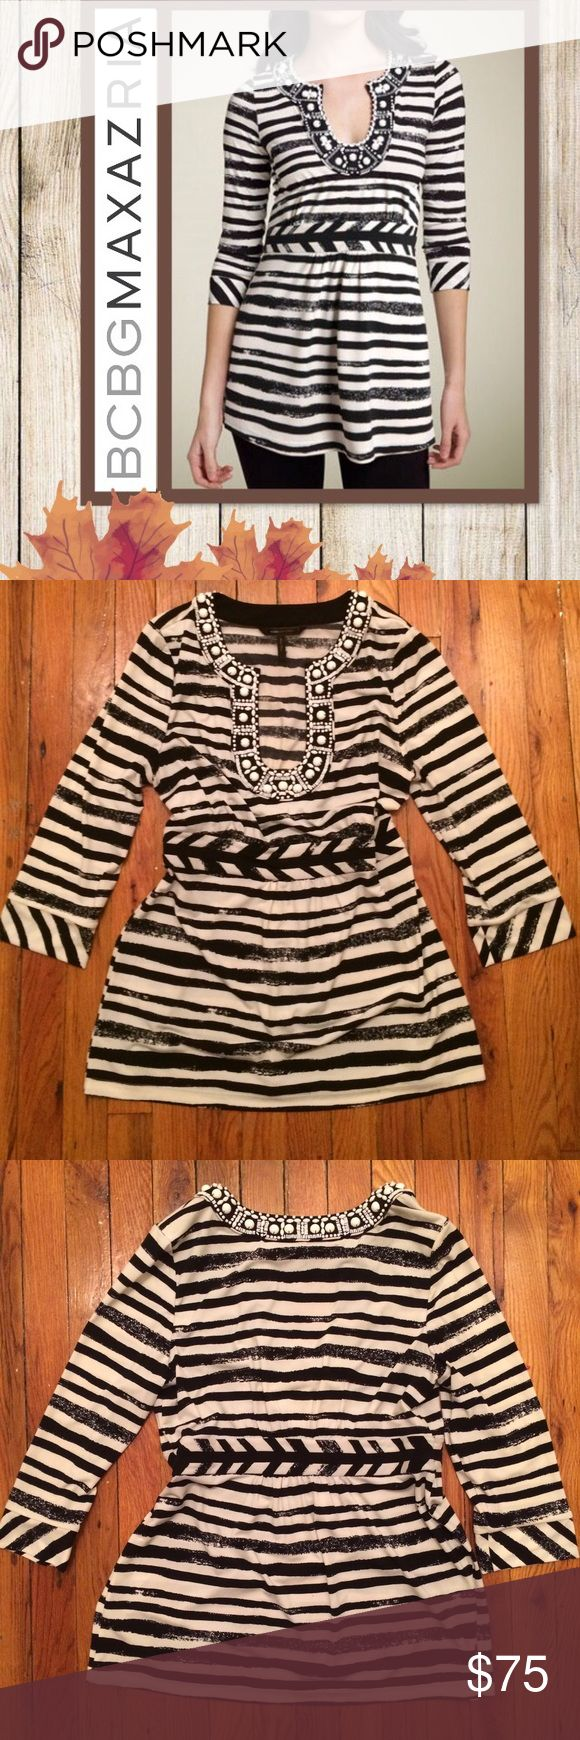 NWOT 🍂BCBGMAXAZRIA Top Tunic🍂 A beautifully beaded horseshoe neckline is the focal point of this chalk-striped tunic, gently shaped with a wide inset waist. 3/4 length sleeves. 🍂Polyester/spandex. Hand wash.  Brand new 🍁❤️💕 BCBGMaxAzria Tops Tunics